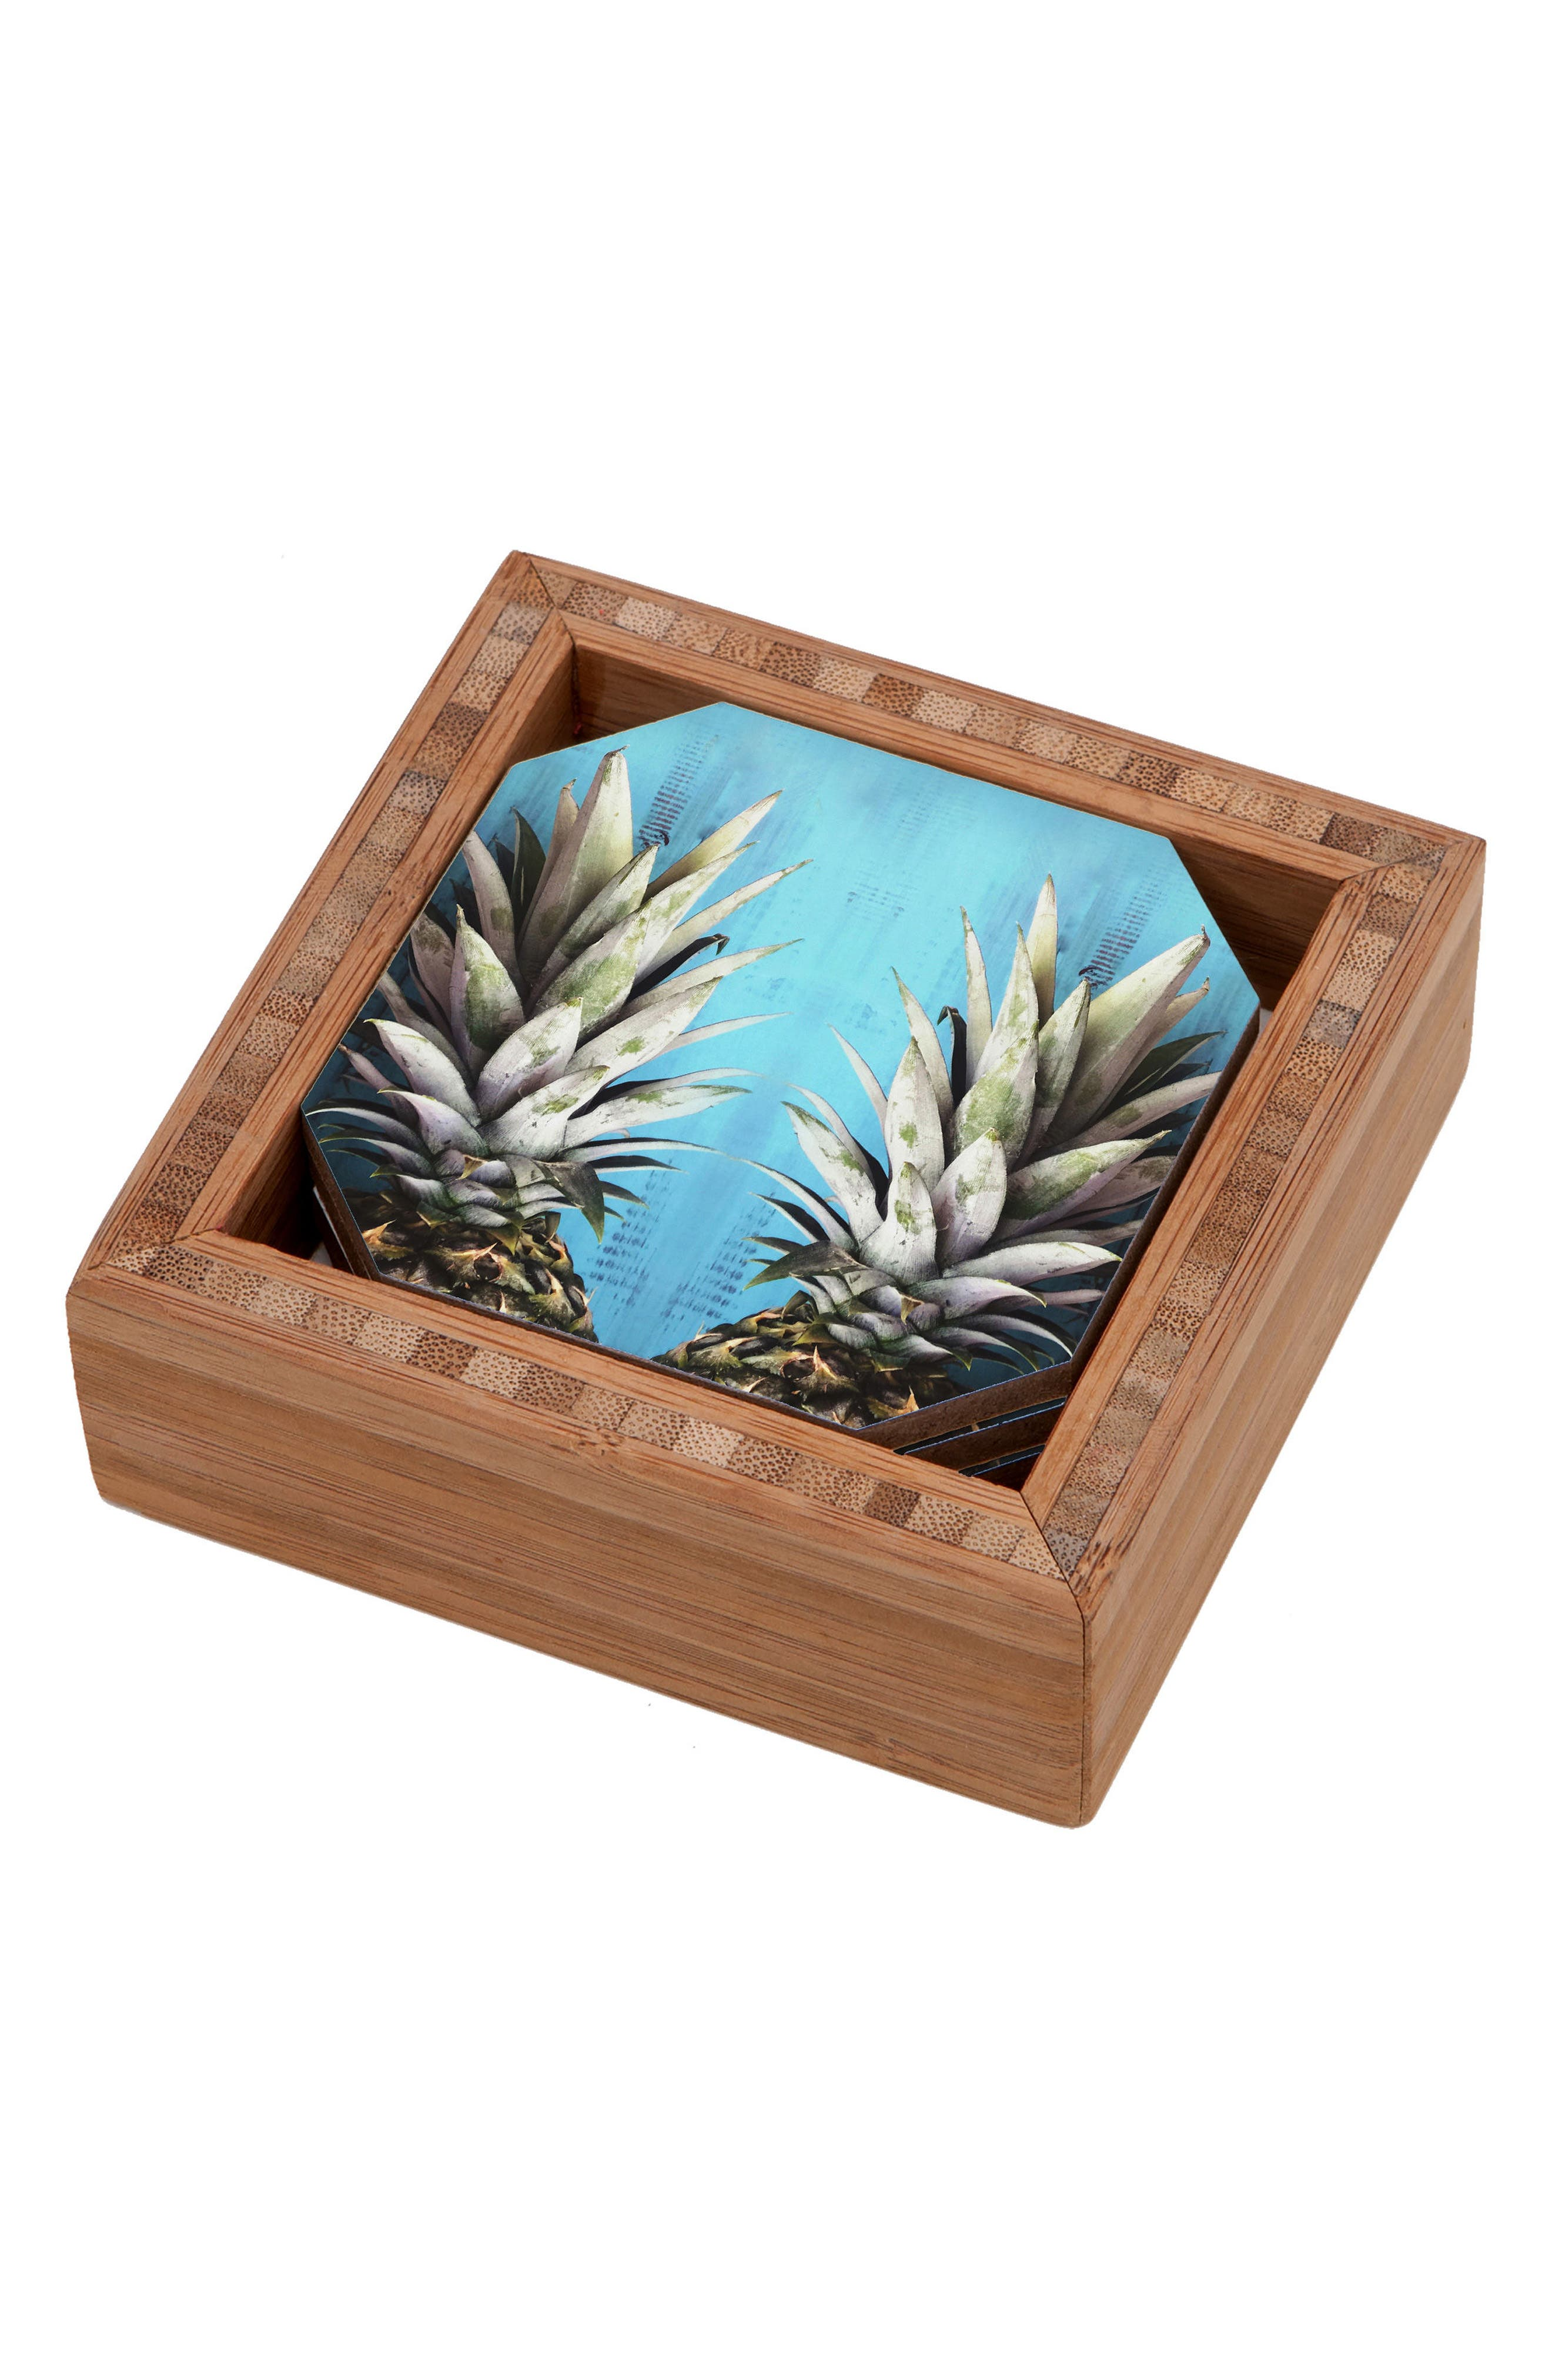 How About Them Pineapples Coaster Set of 4 Coasters,                             Alternate thumbnail 2, color,                             400